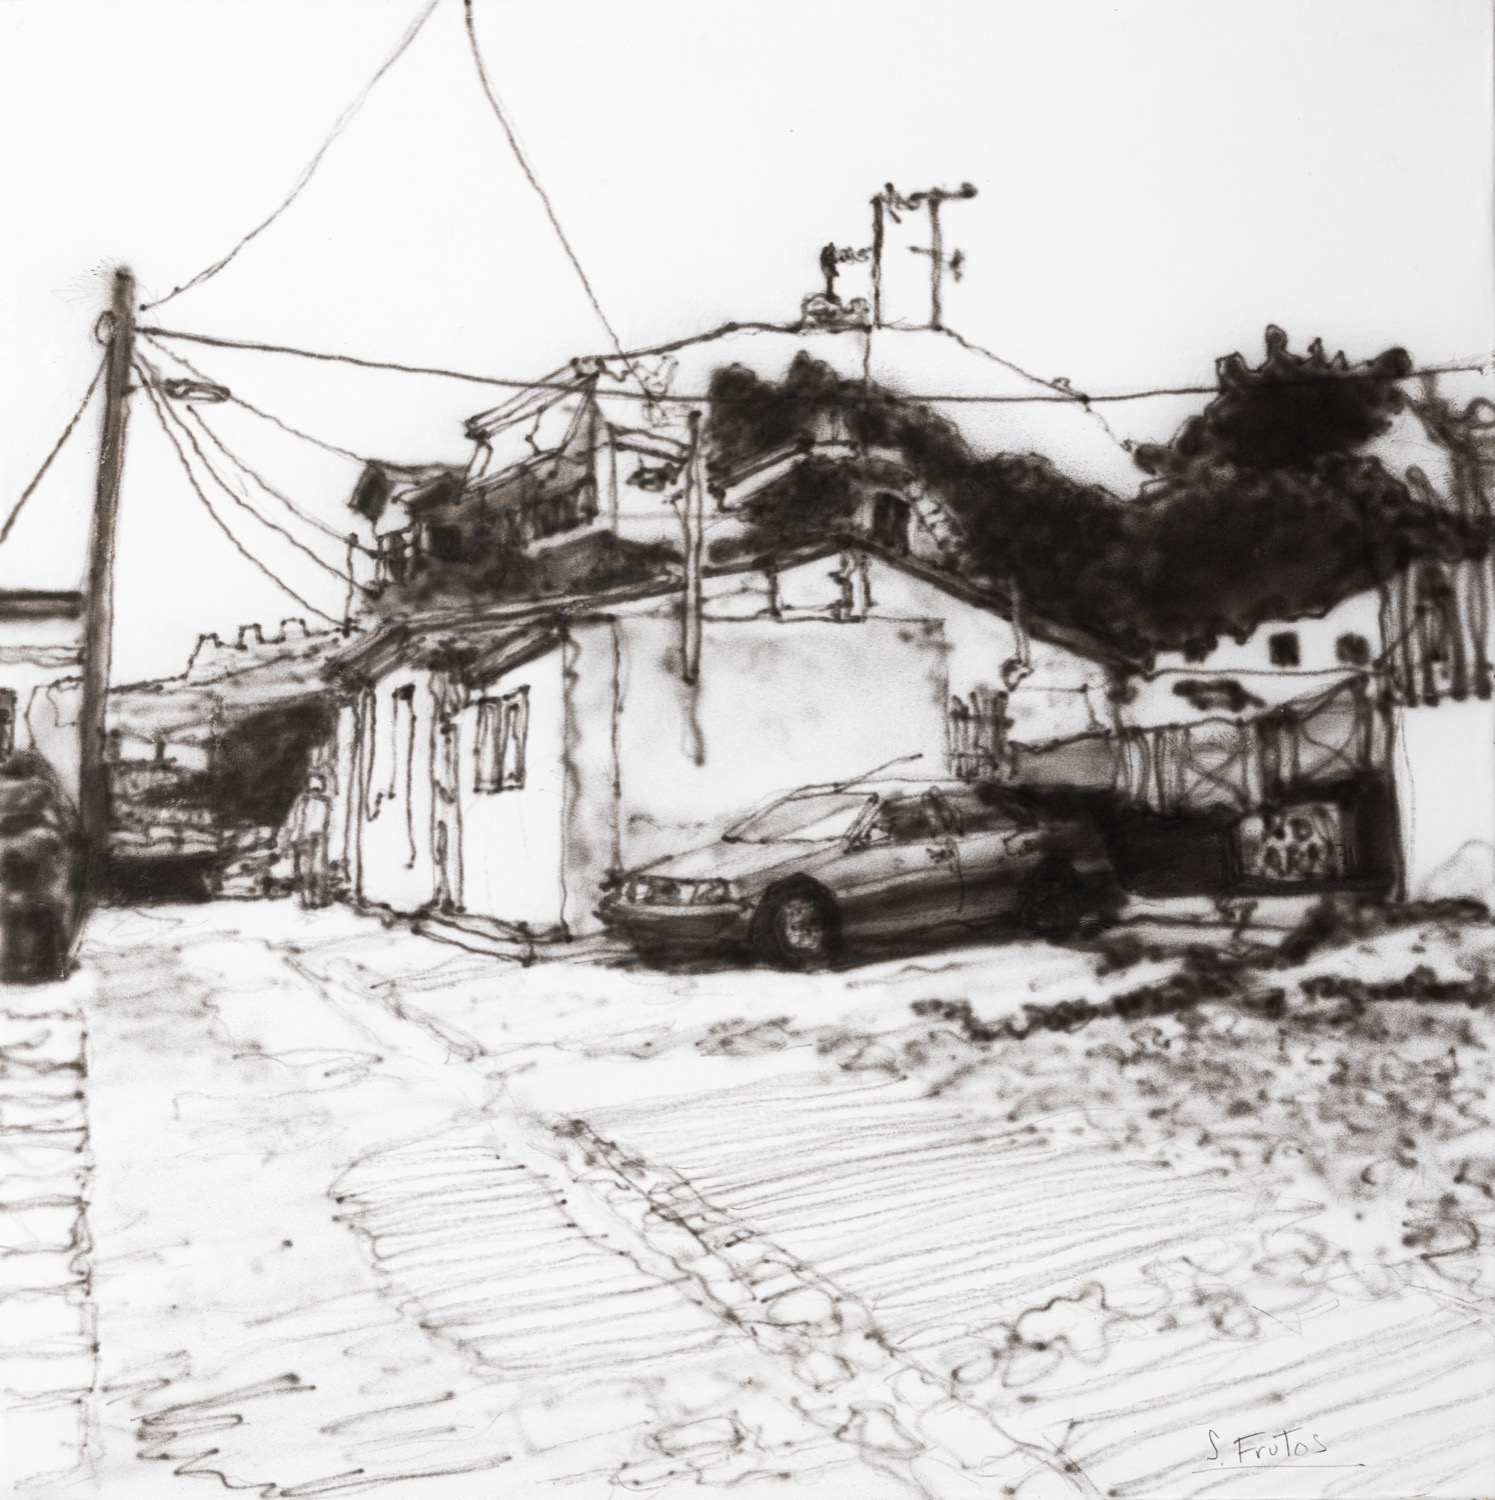 Anapoli, Thessalonika. Ink on paper on wood, 30 x 30 cm, 2019